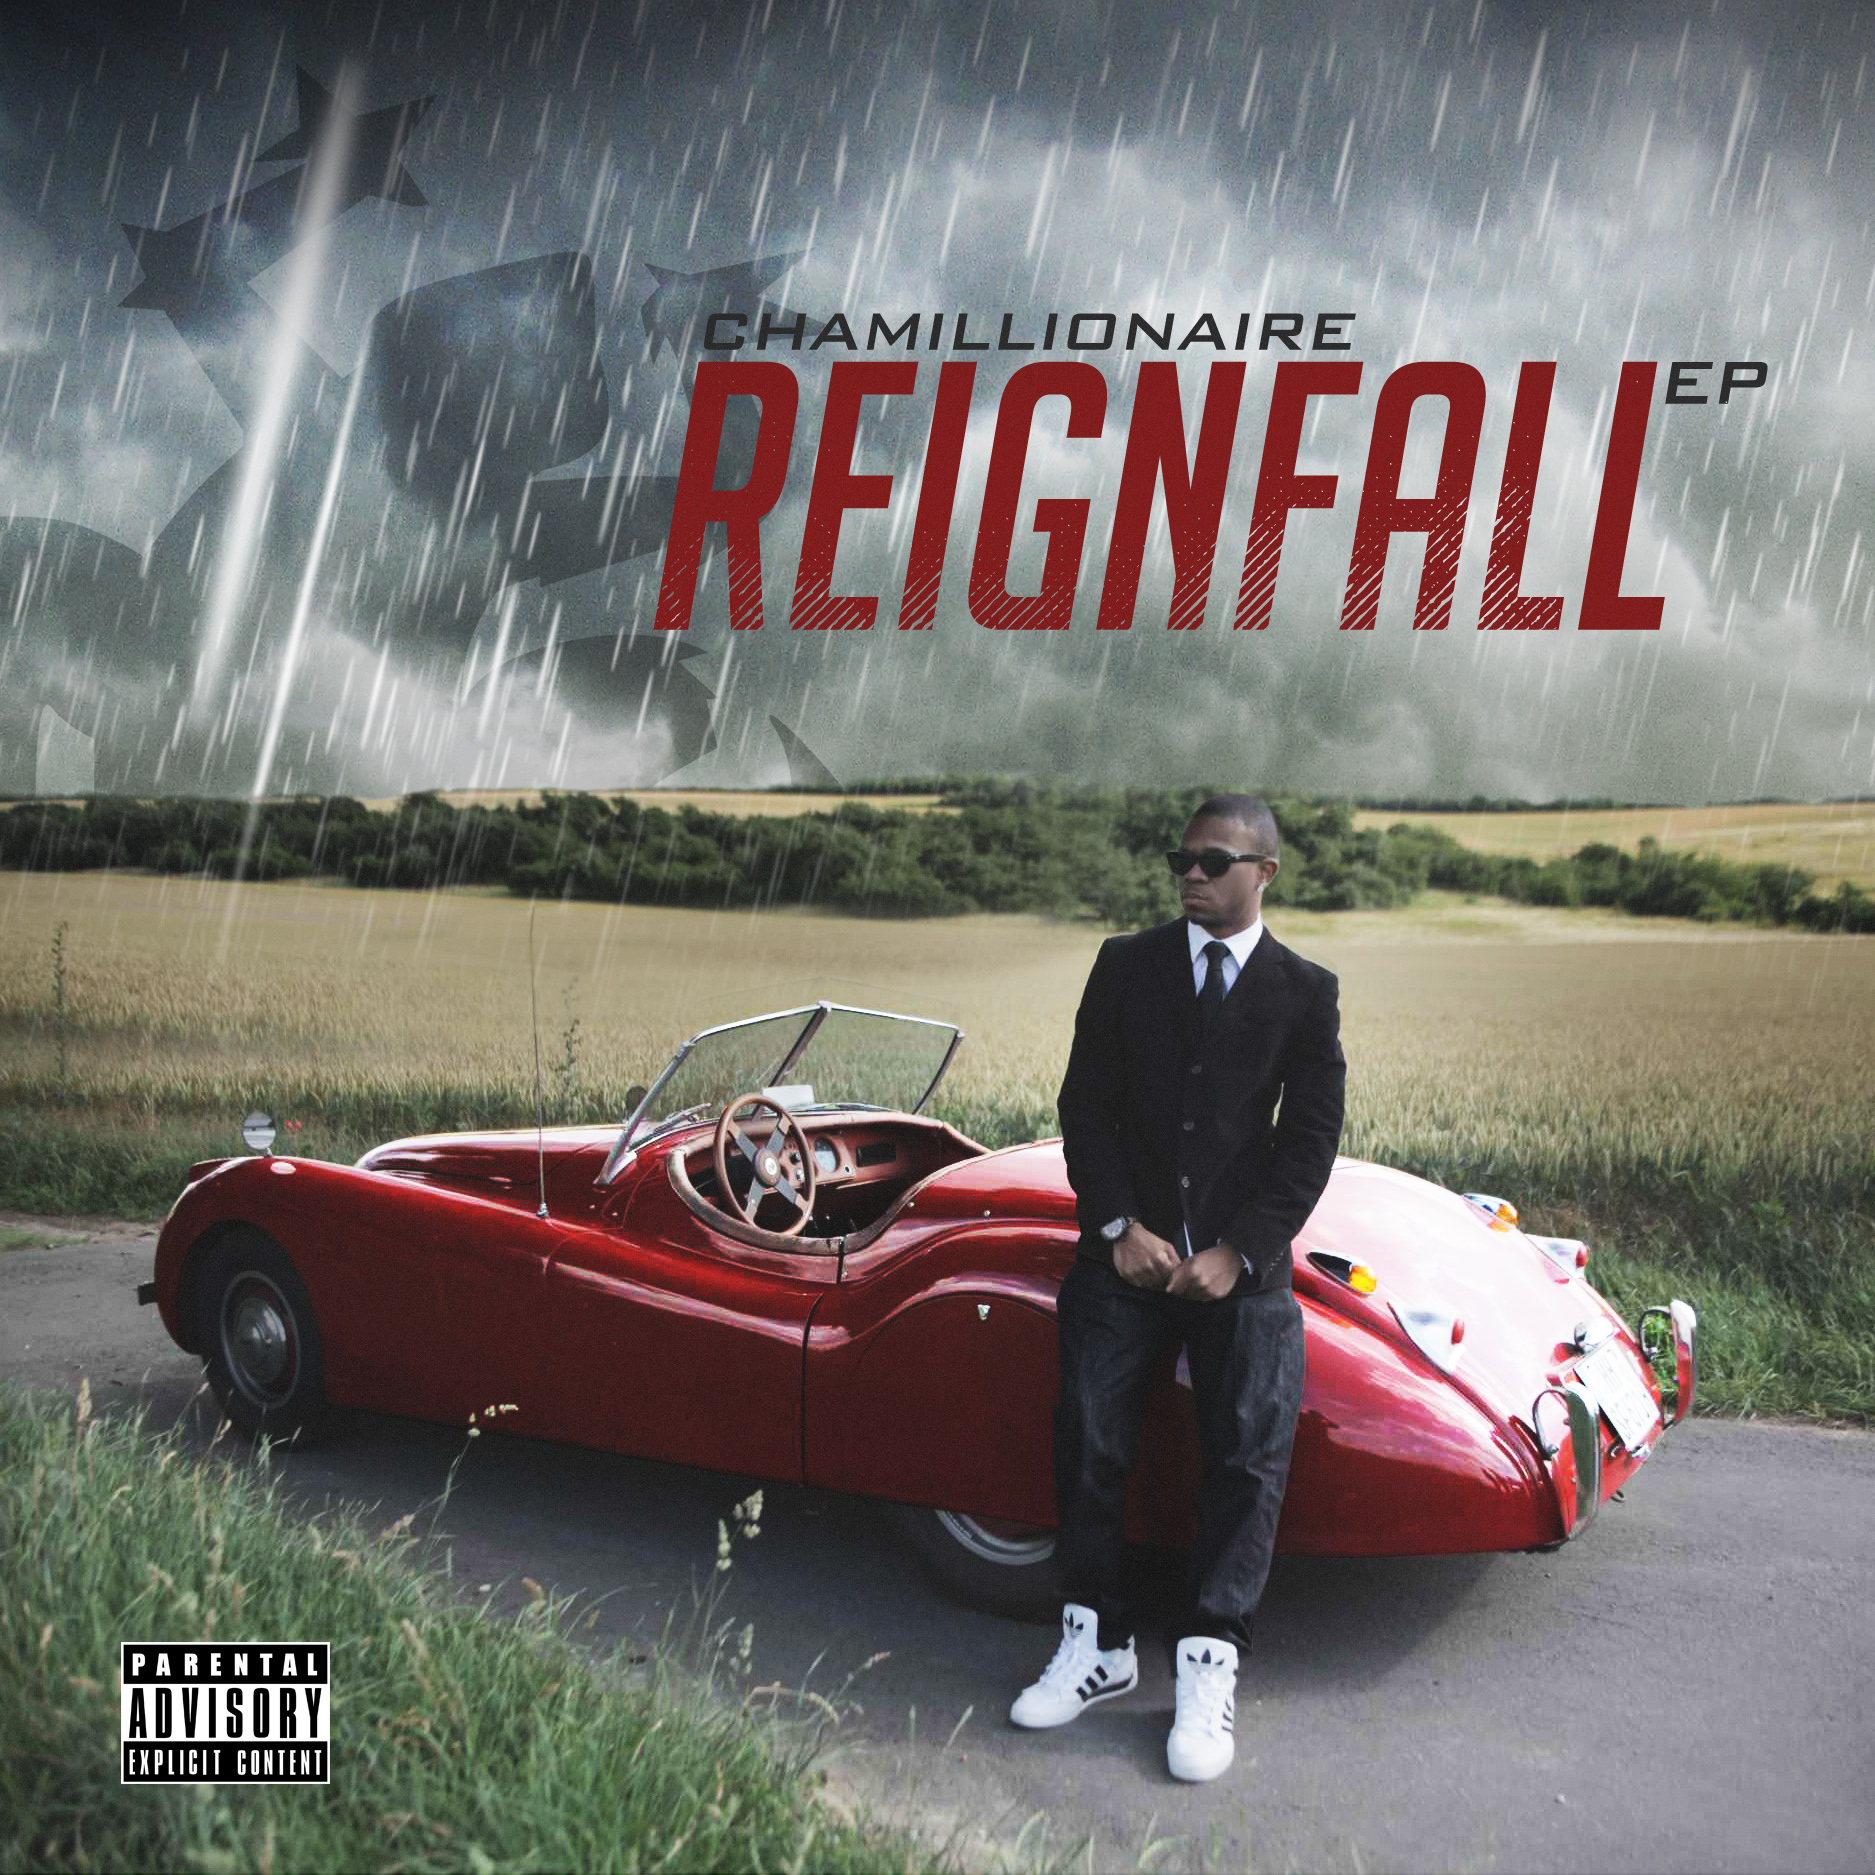 News Added Jun 17, 2013 The REIGNFALL EP will release on JULY 23RD 2013. I have set the release date back about a week further than in the past to allow more time to get all of the pre-orders packaged and ready to be shipped. All of these new chamillionaire.com EP orders will be shipped […]